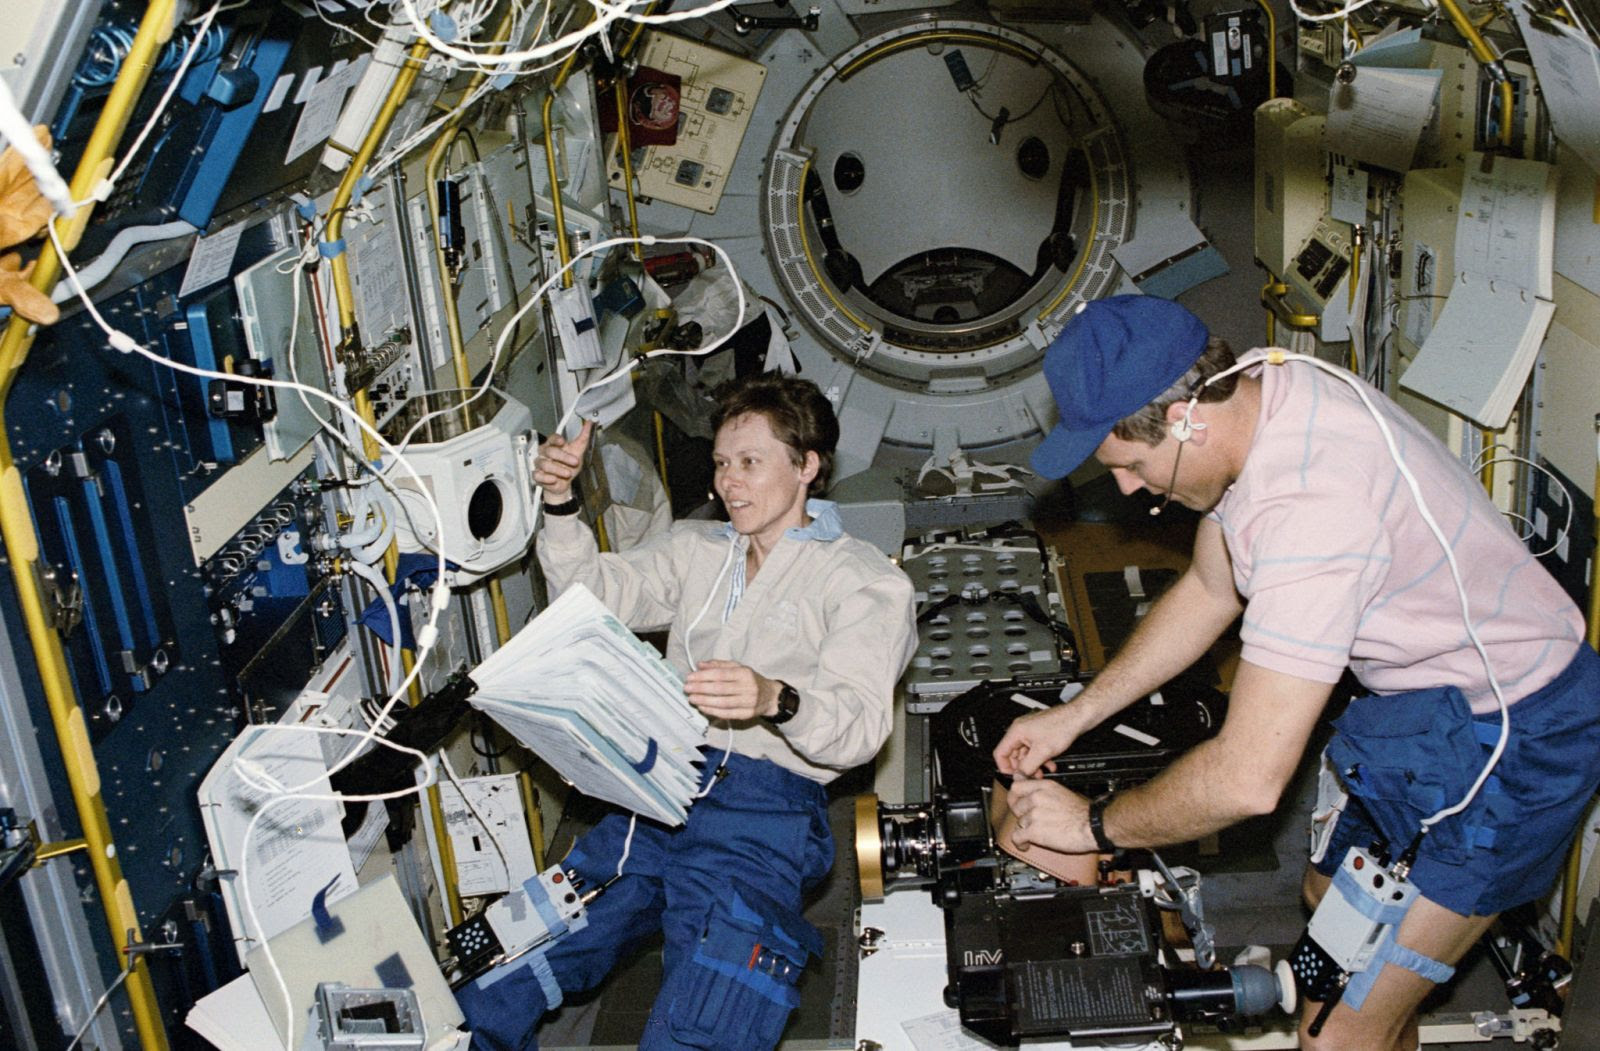 Roberta Bondar studies the human body in space